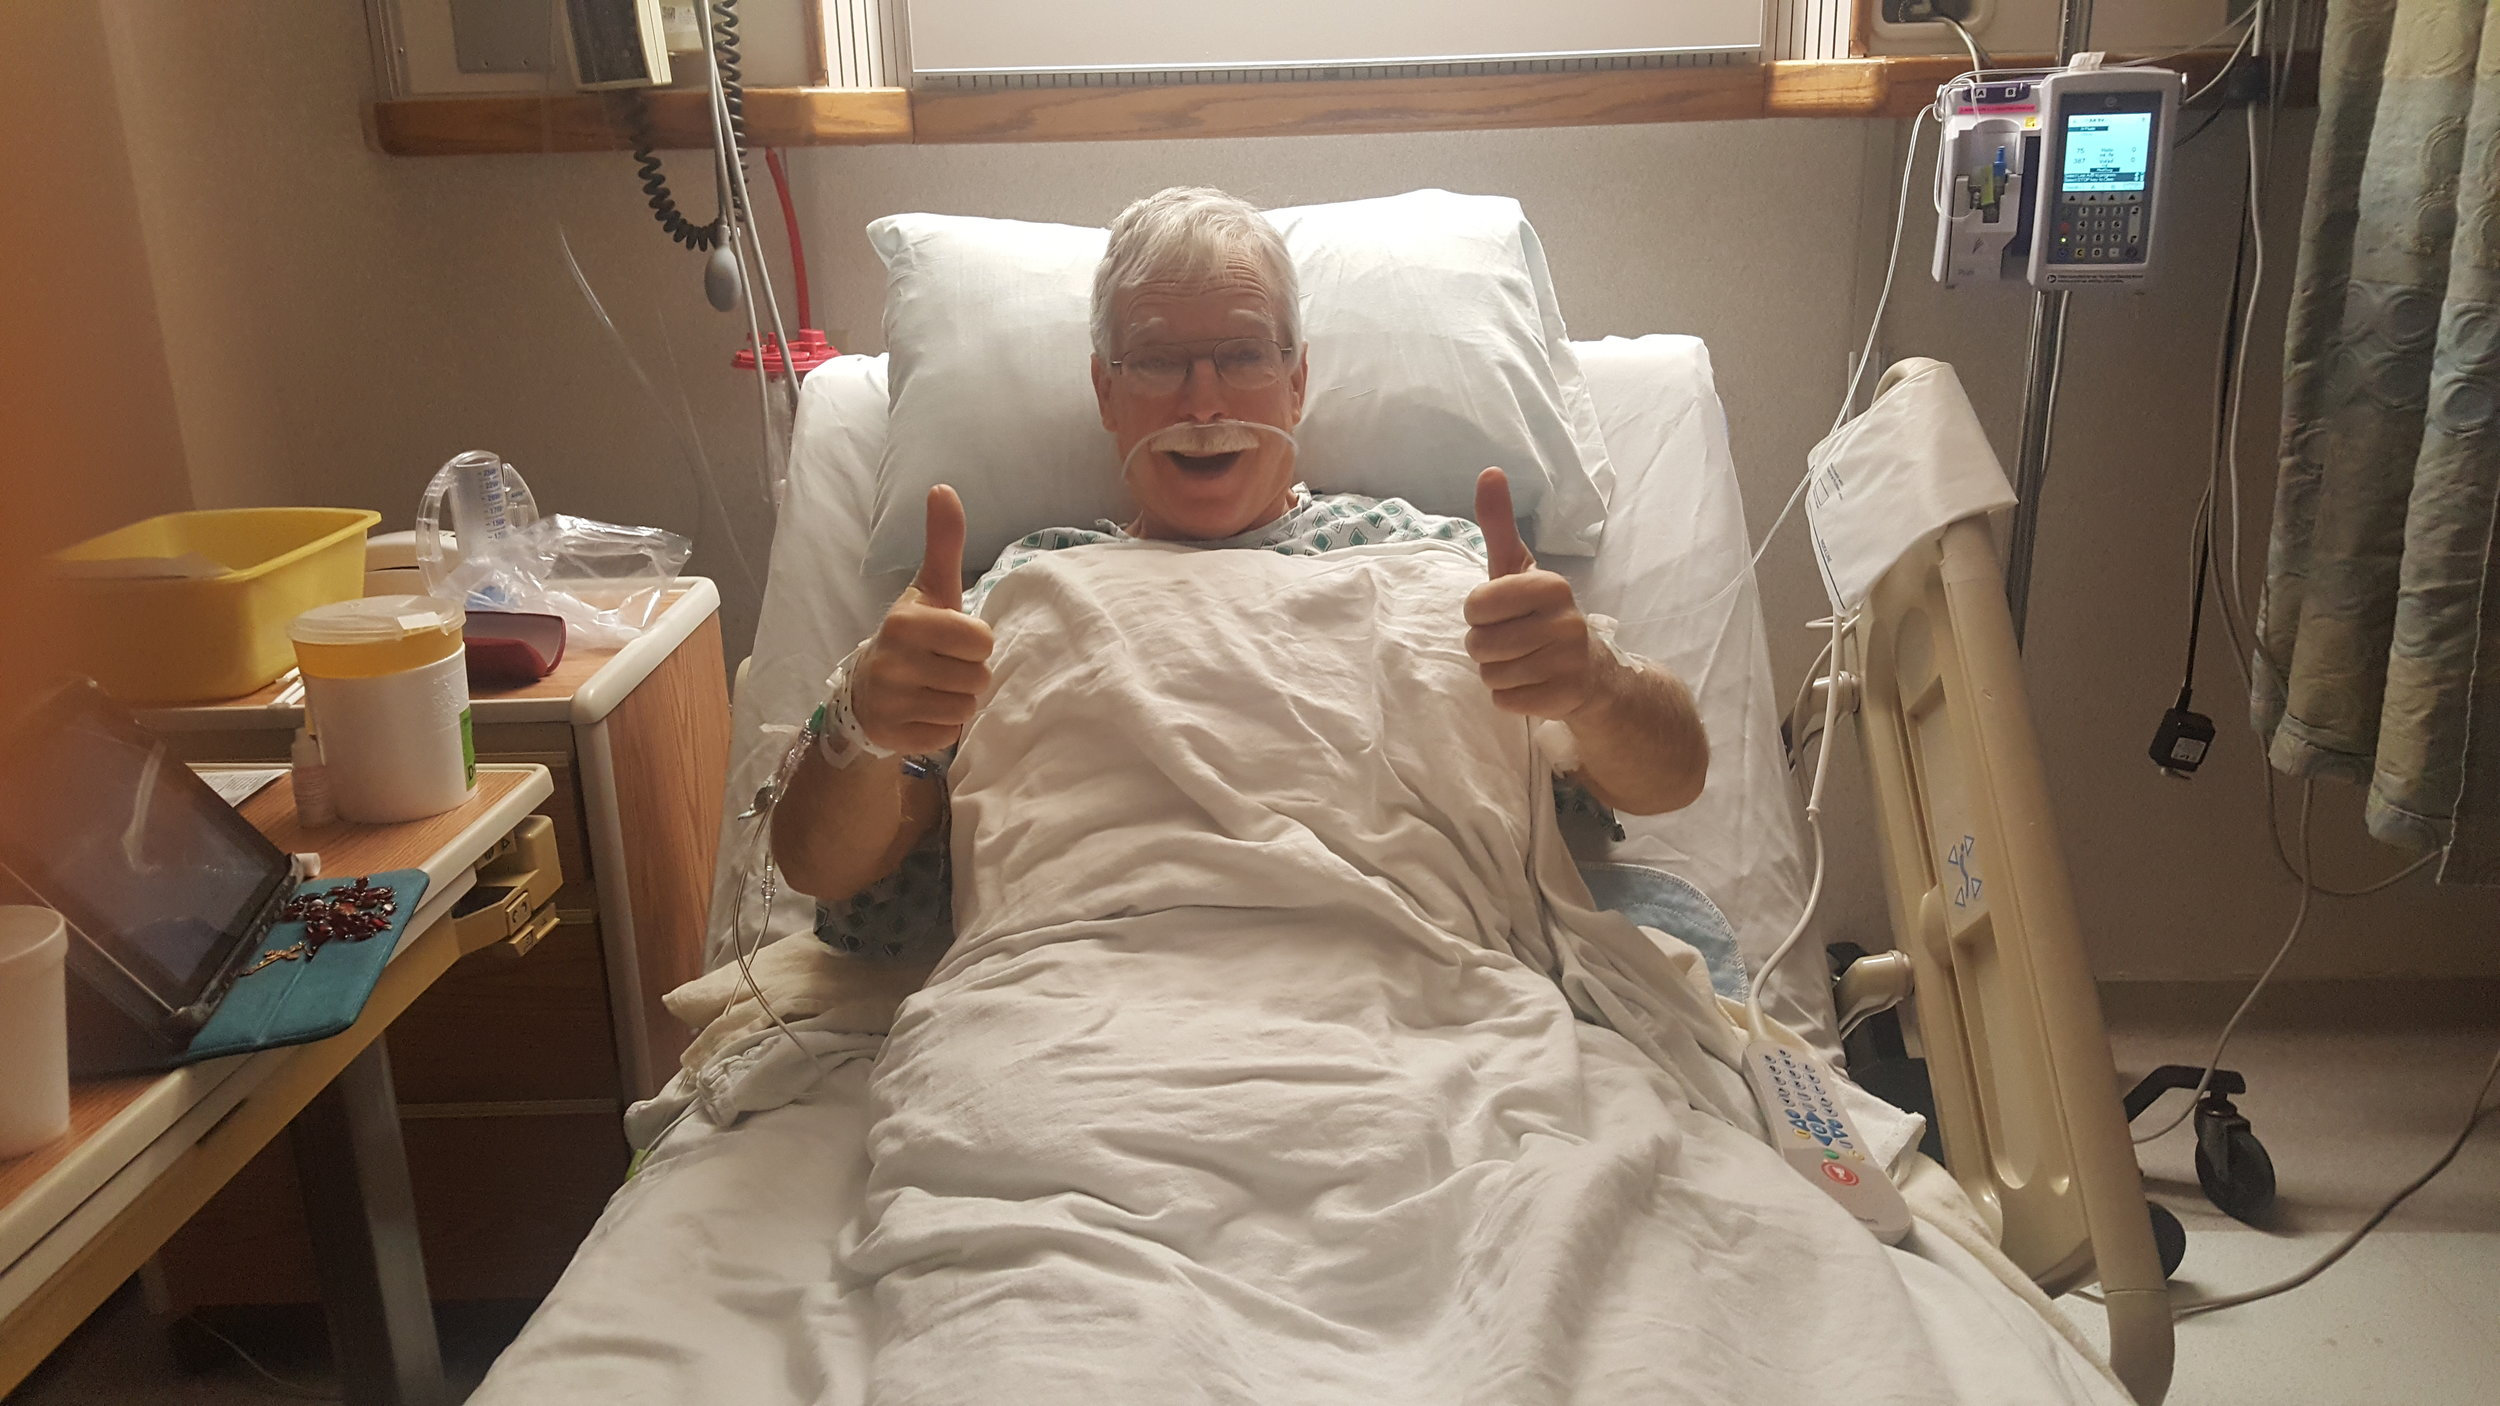 Don didn't have any hesitations about donating a kidney before or after his surgery.